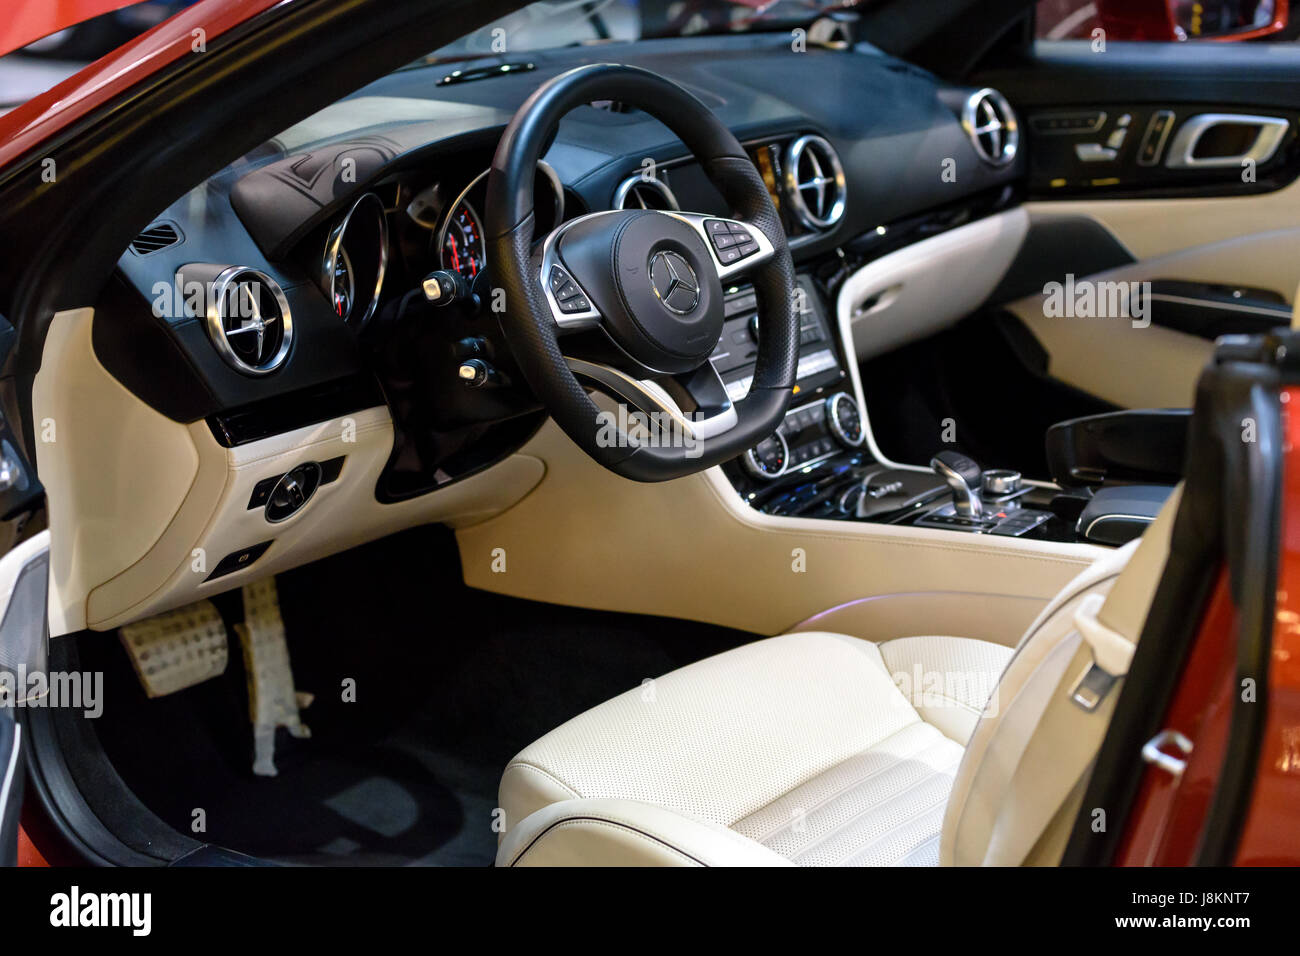 Krakow, Poland, May 21, 2017: Presentation of the inerior of the new Mercedes SL500 Cabrio during MotoShow in Krakow. - Stock Image